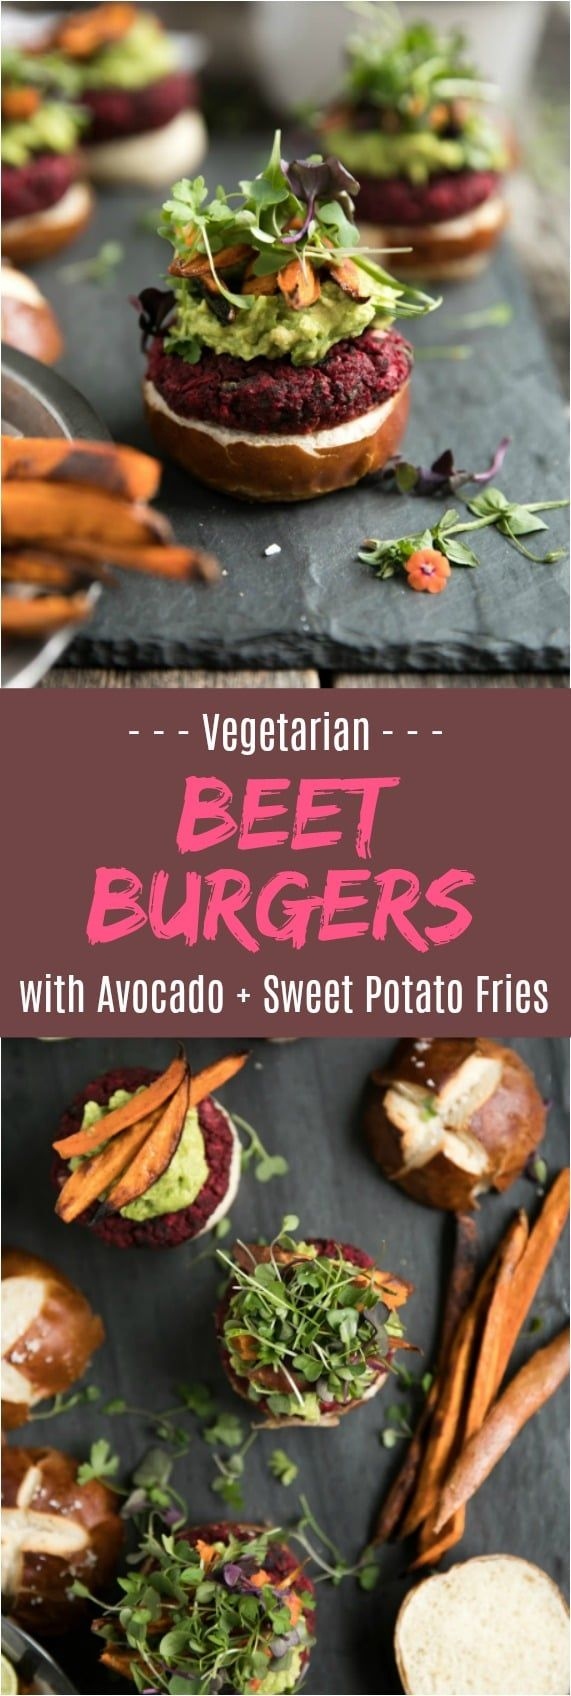 Vegetarian Beet Burgers with Avocado and Sweet Potato Fries